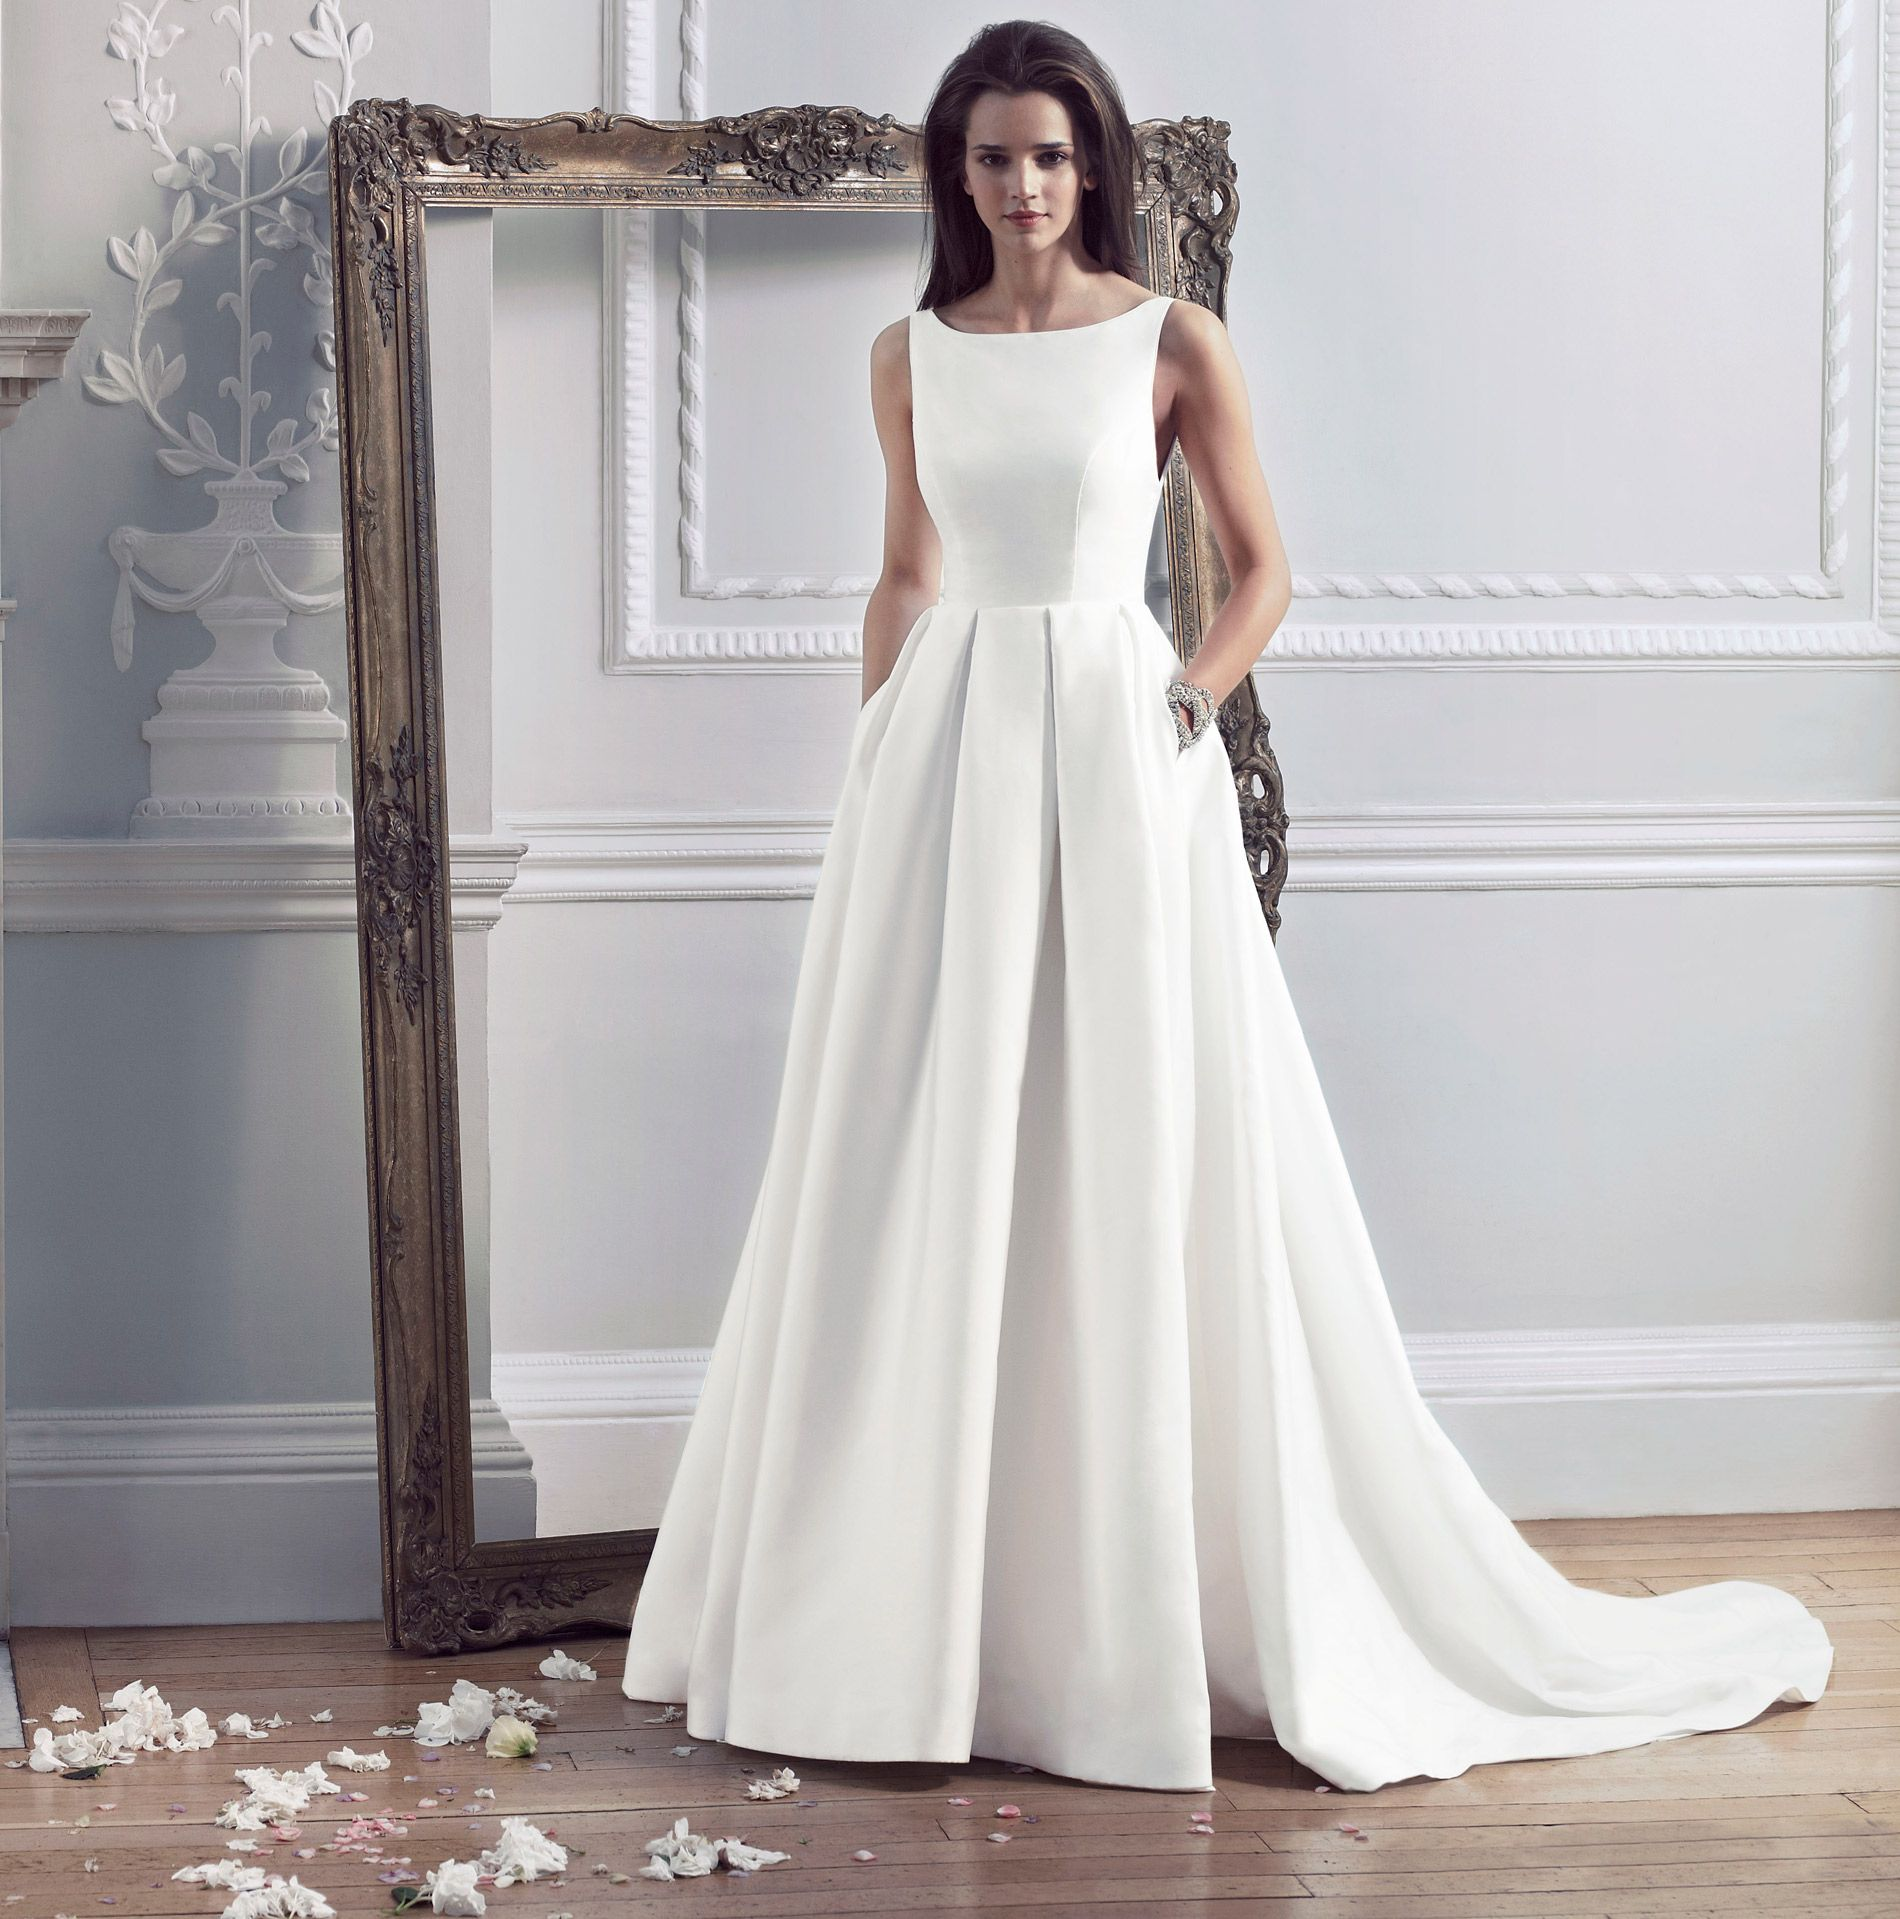 HEPBURN Wedding Dress | Boat neck, Bridal gowns and Bodice